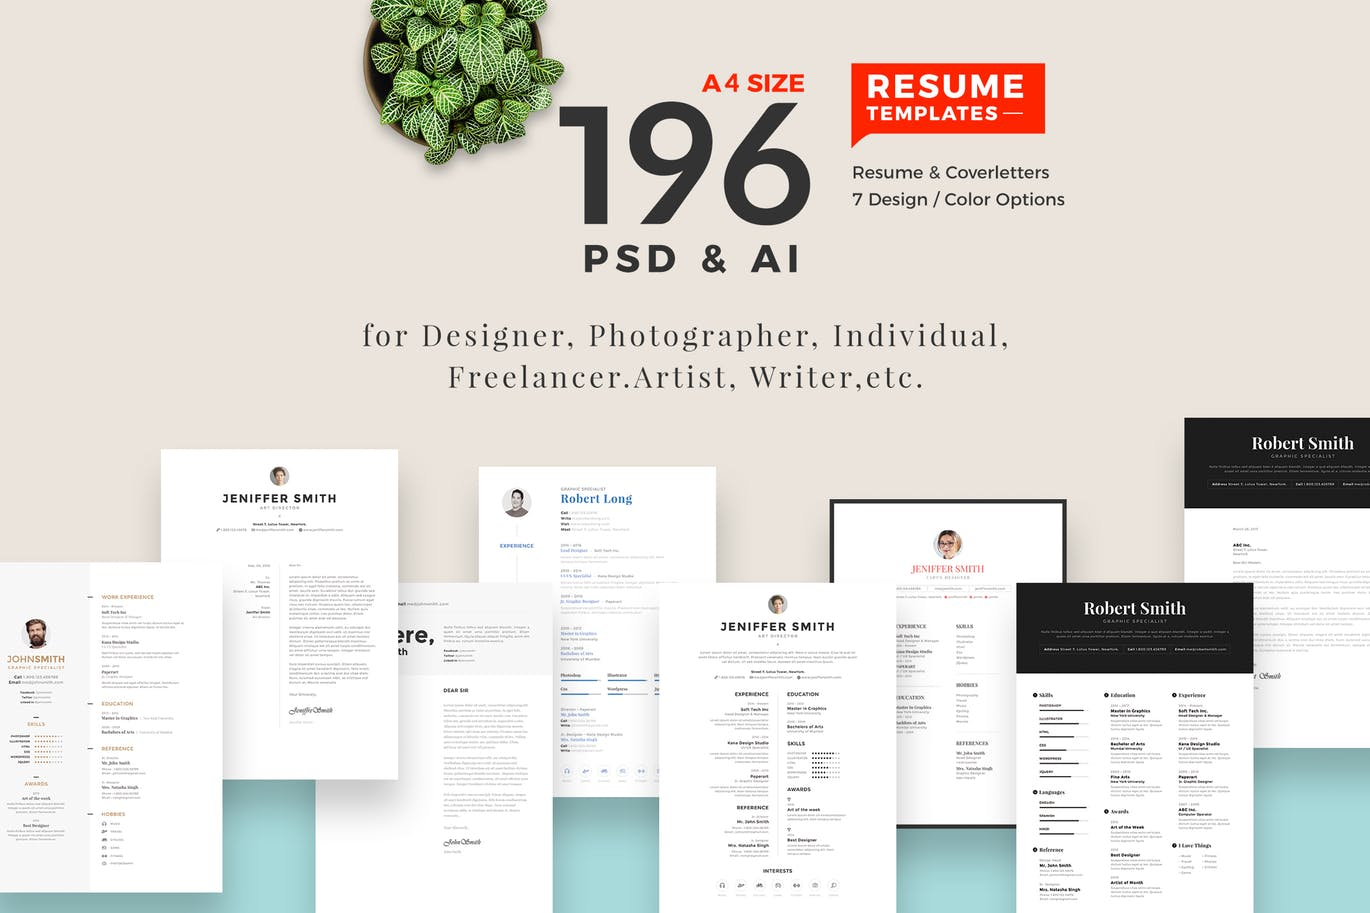 196-Resume-Template 50+ Best CV & Resume Templates 2020 design tips